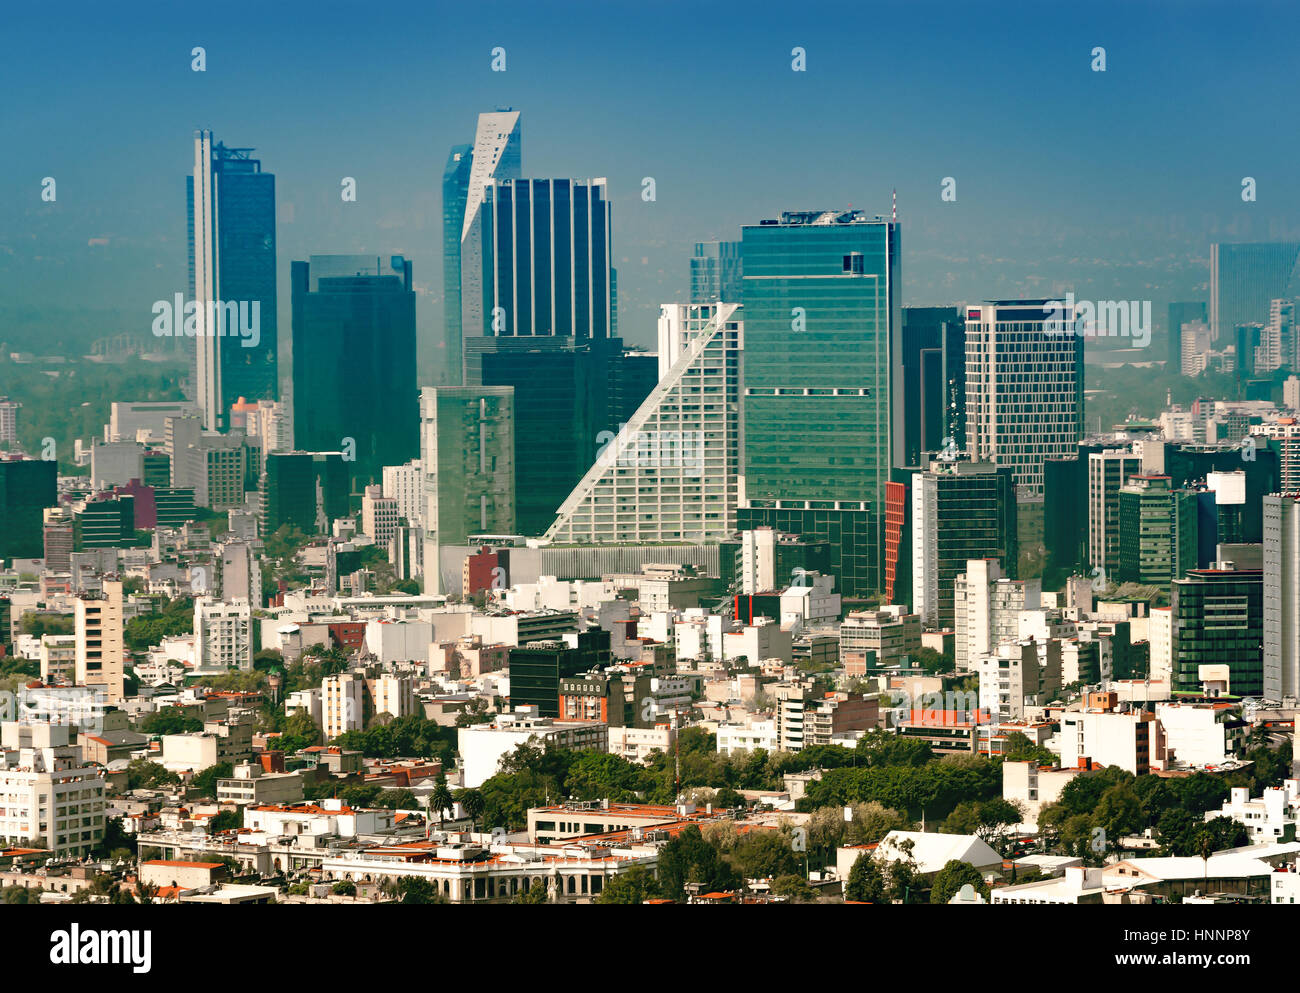 Aerial view of a neighborhood called Colonia Juarez in Mexico City, Mexico, on a sunny morning with some haze. - Stock Image